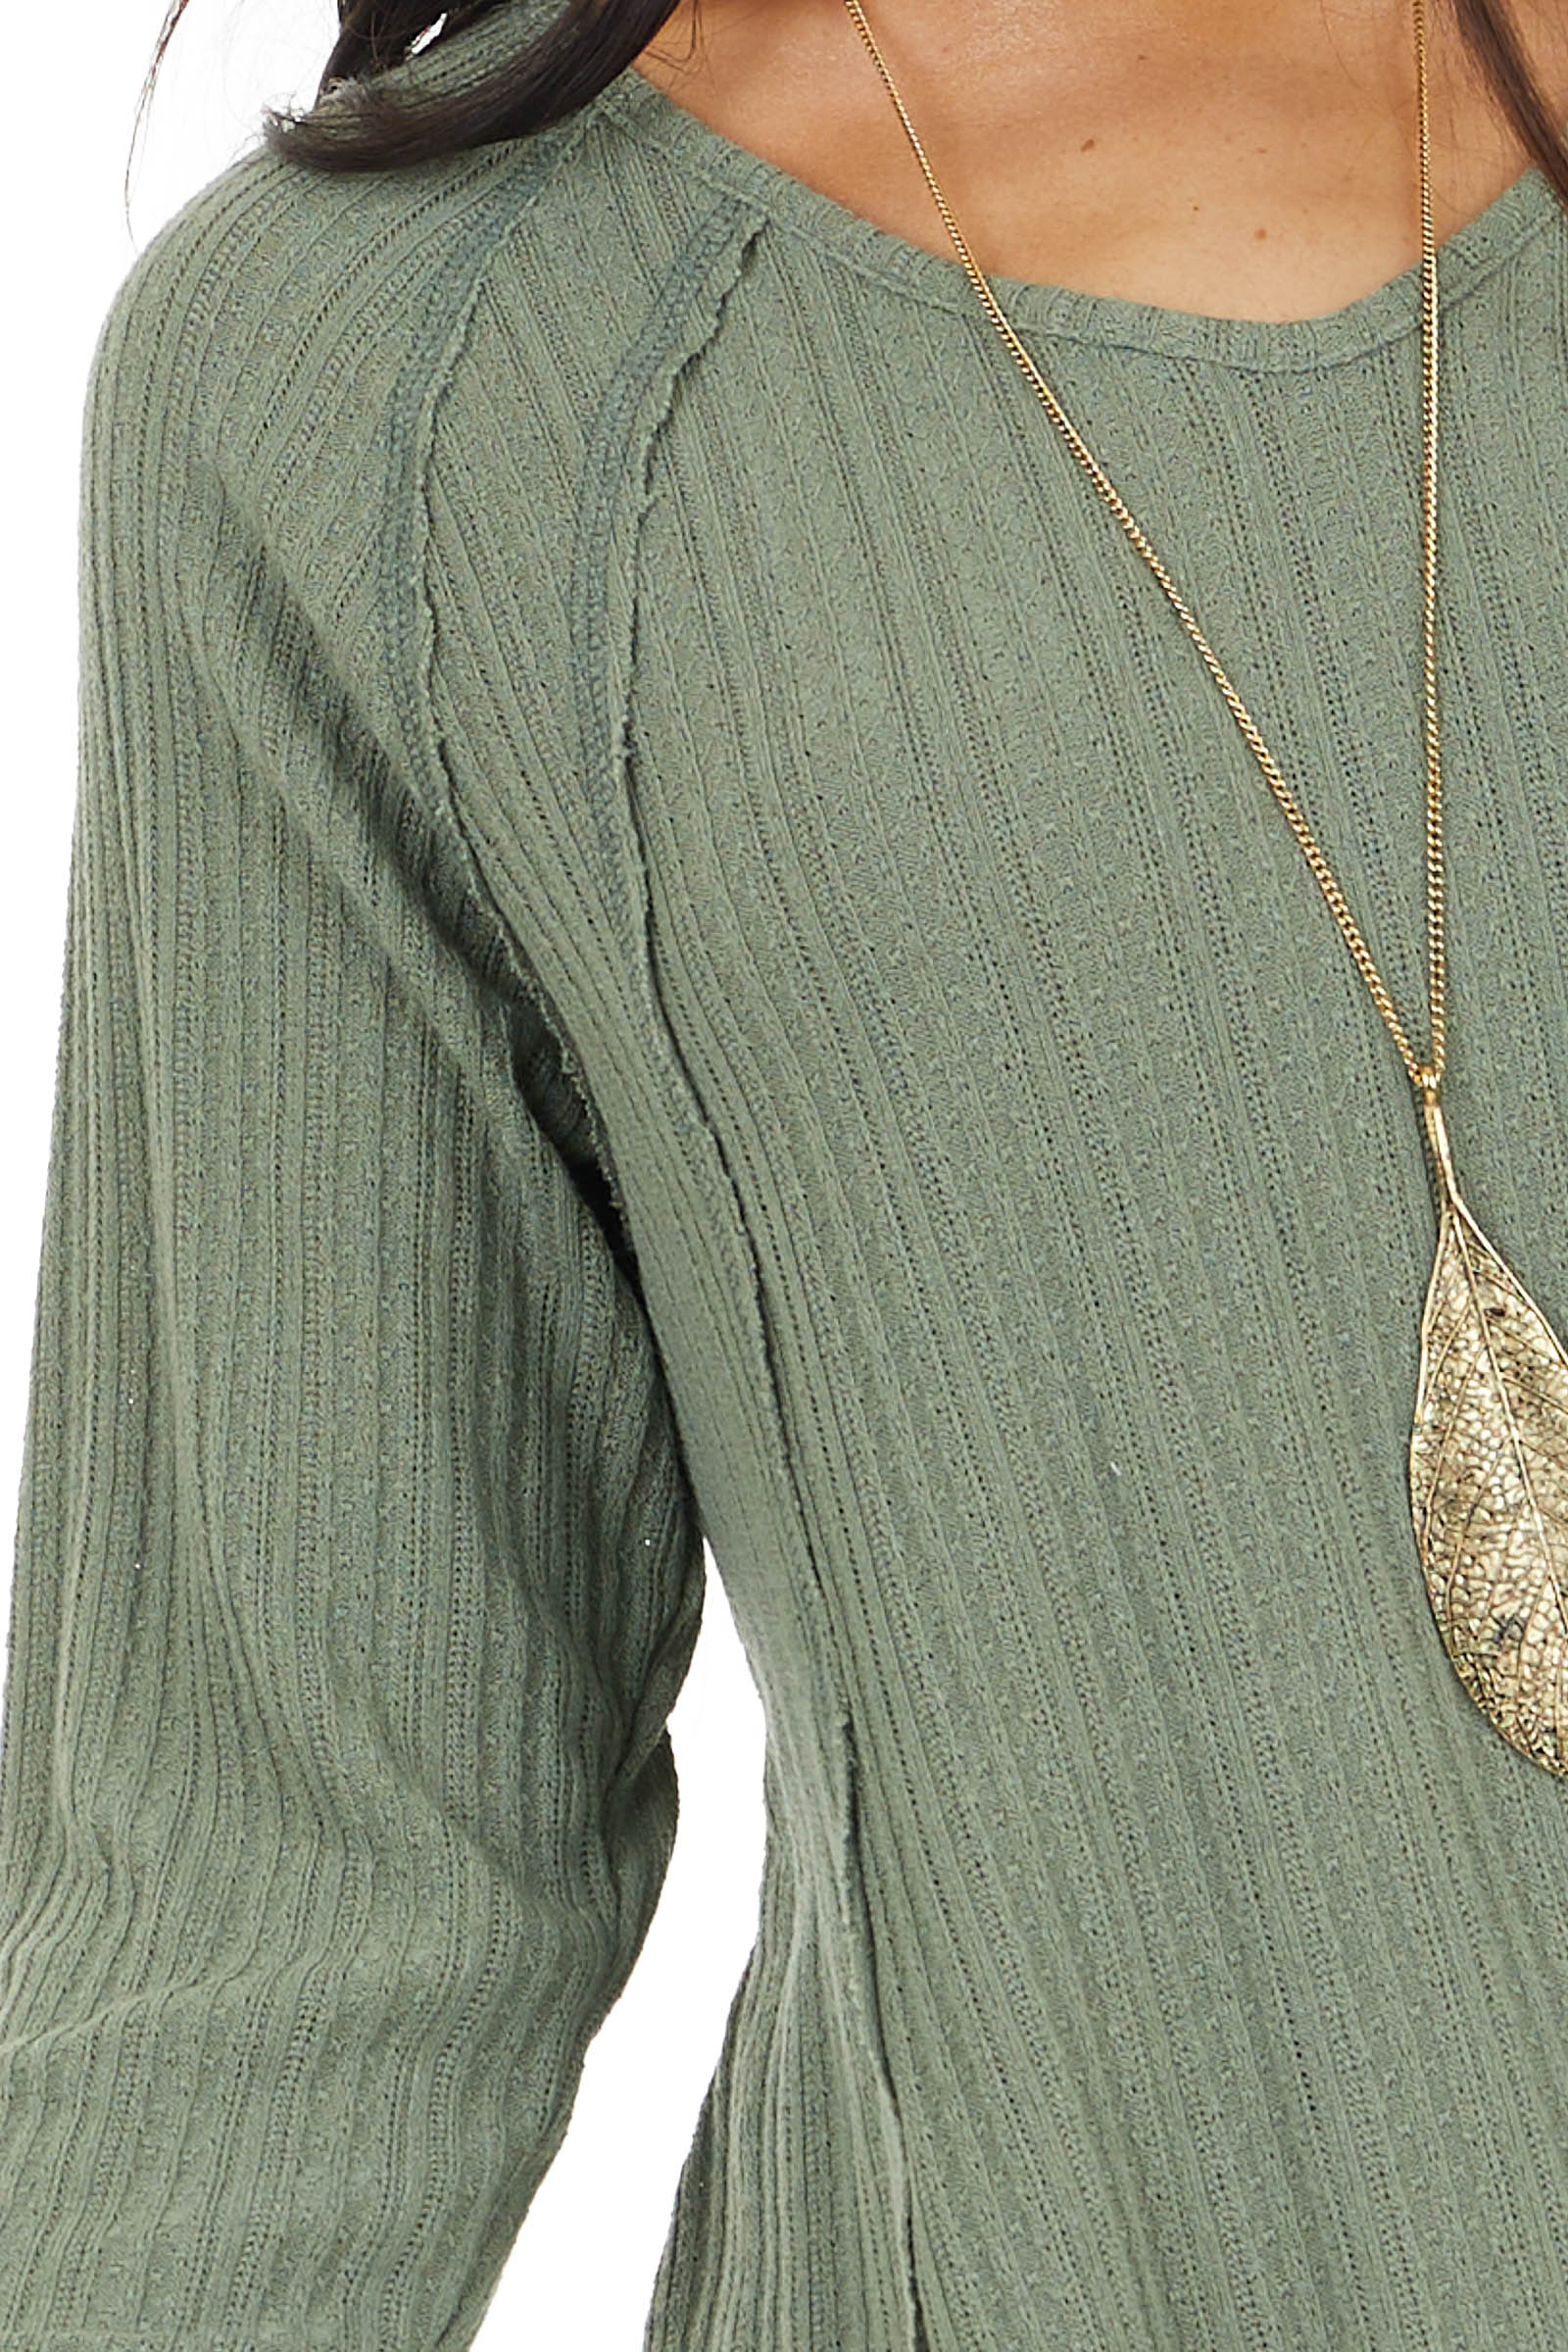 Olive Long Sleeve Textured Knit Tunic Top with Raw Edges